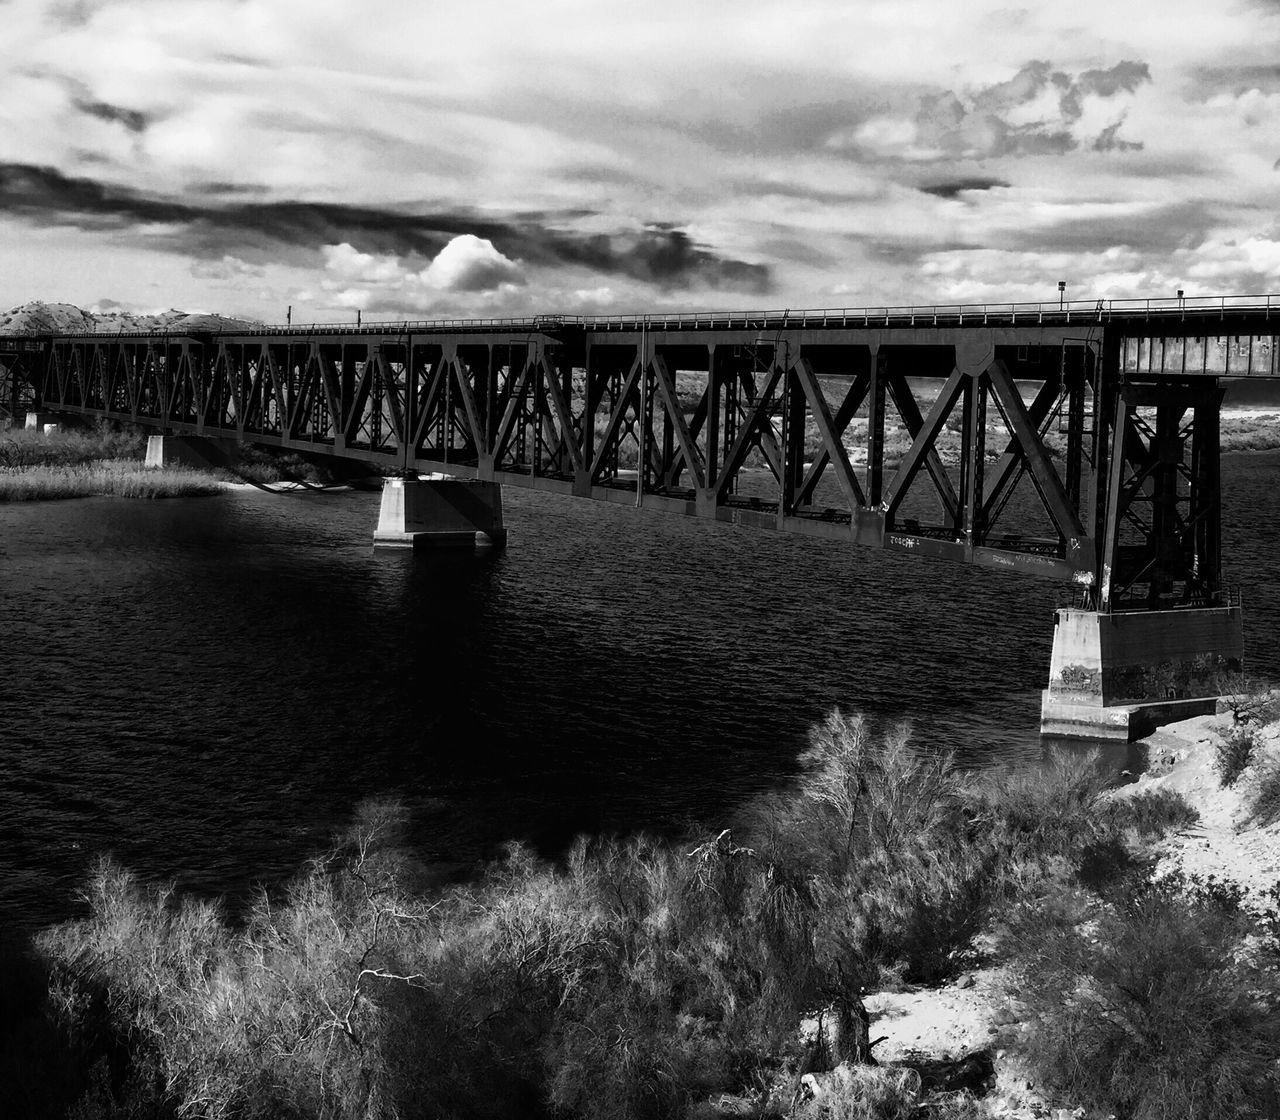 Johnny cash sang, I hear the train a comin' It's rollin' 'round the bend Train Track Train Trestle Bridge Trainphotography Trains_worldwide Trains And Railroads Train Rails Train Bridge Train Sky Clouds river River